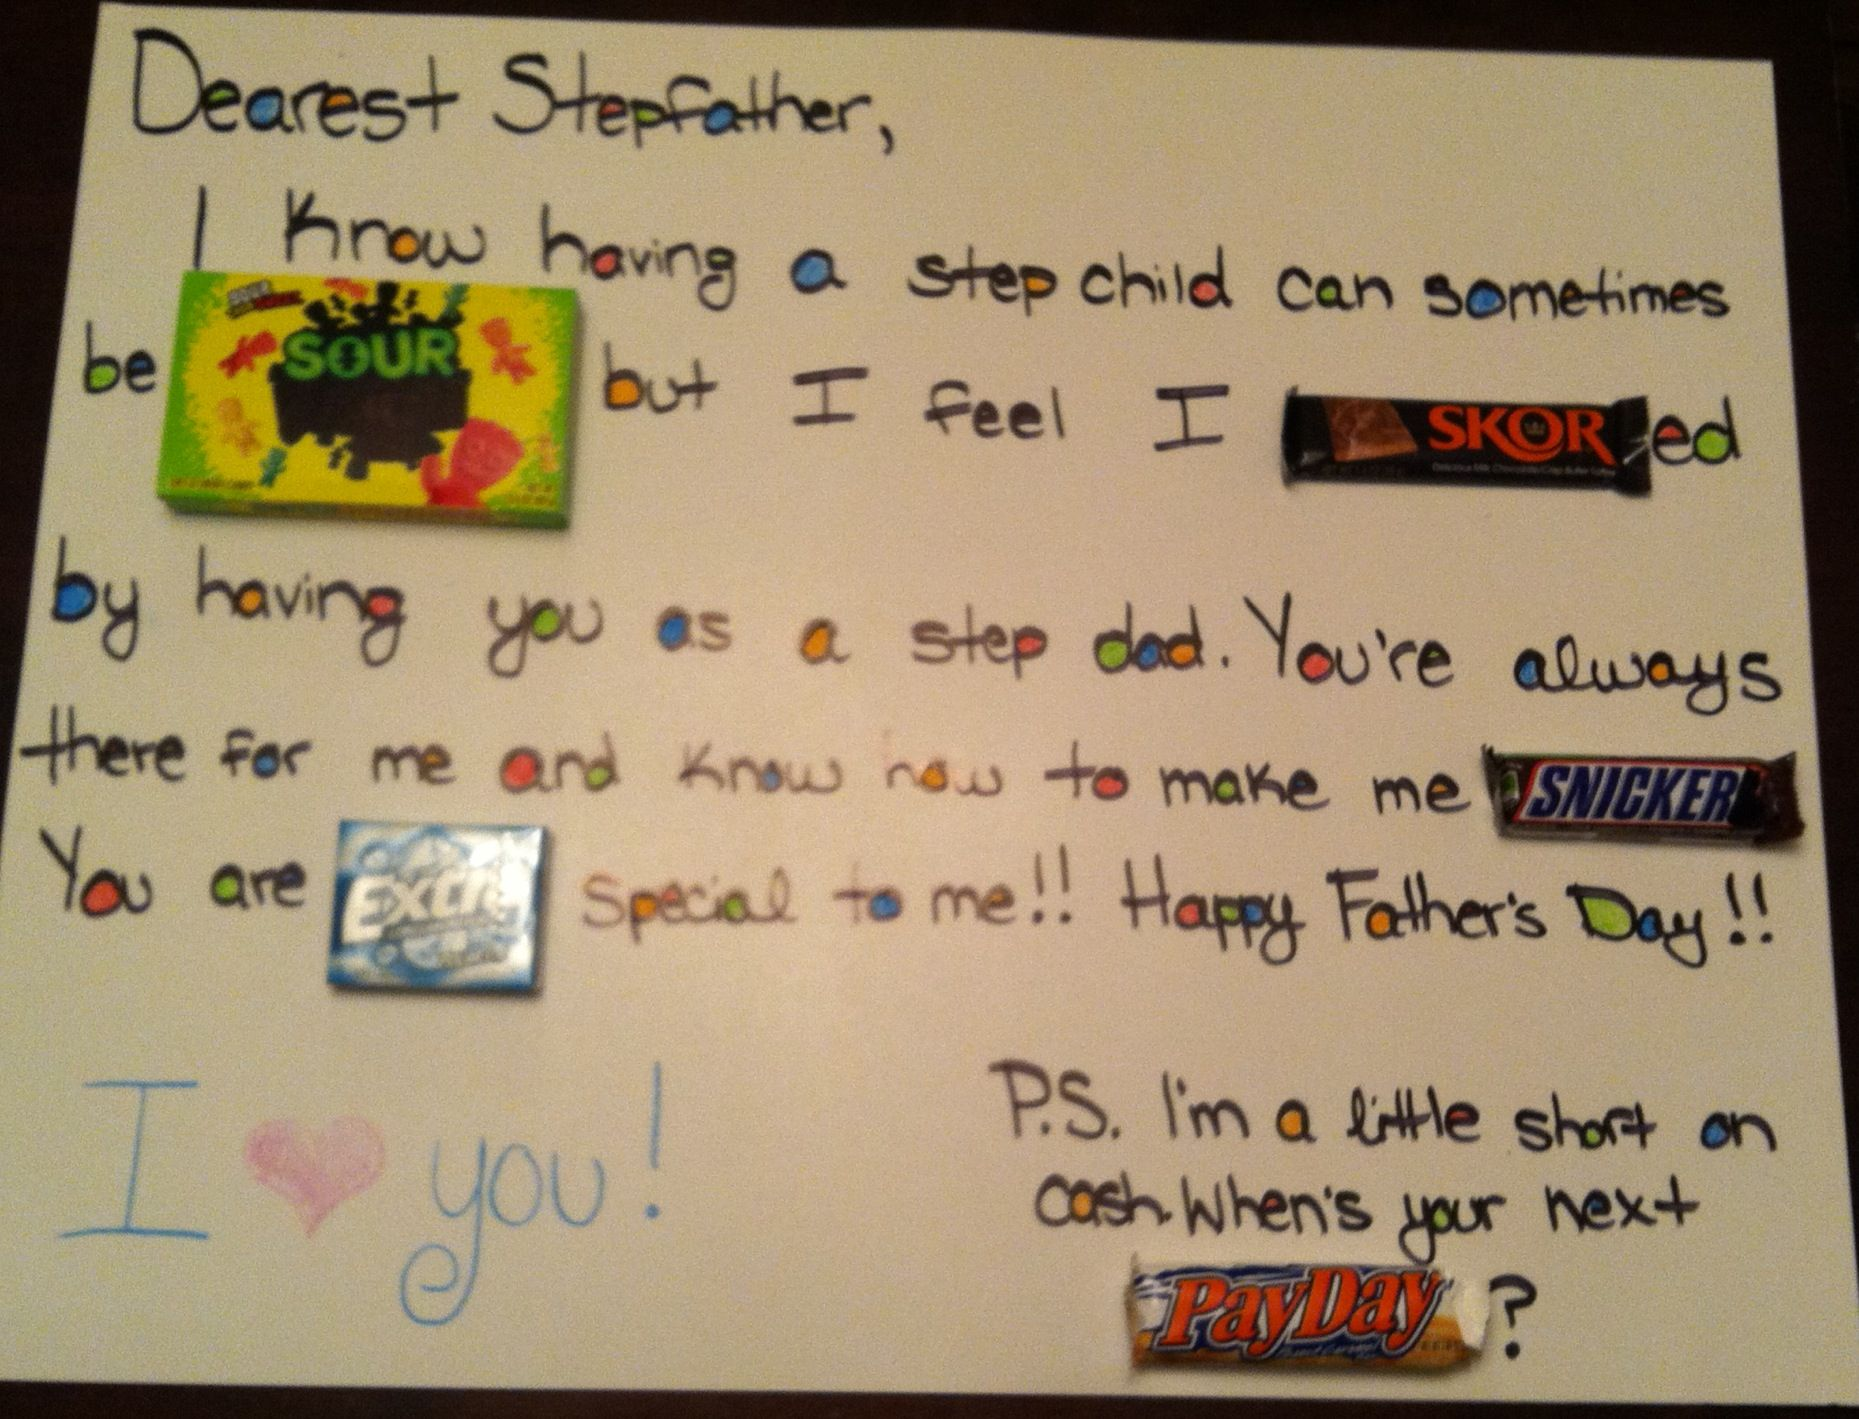 Fathers Day Card For Stepdad